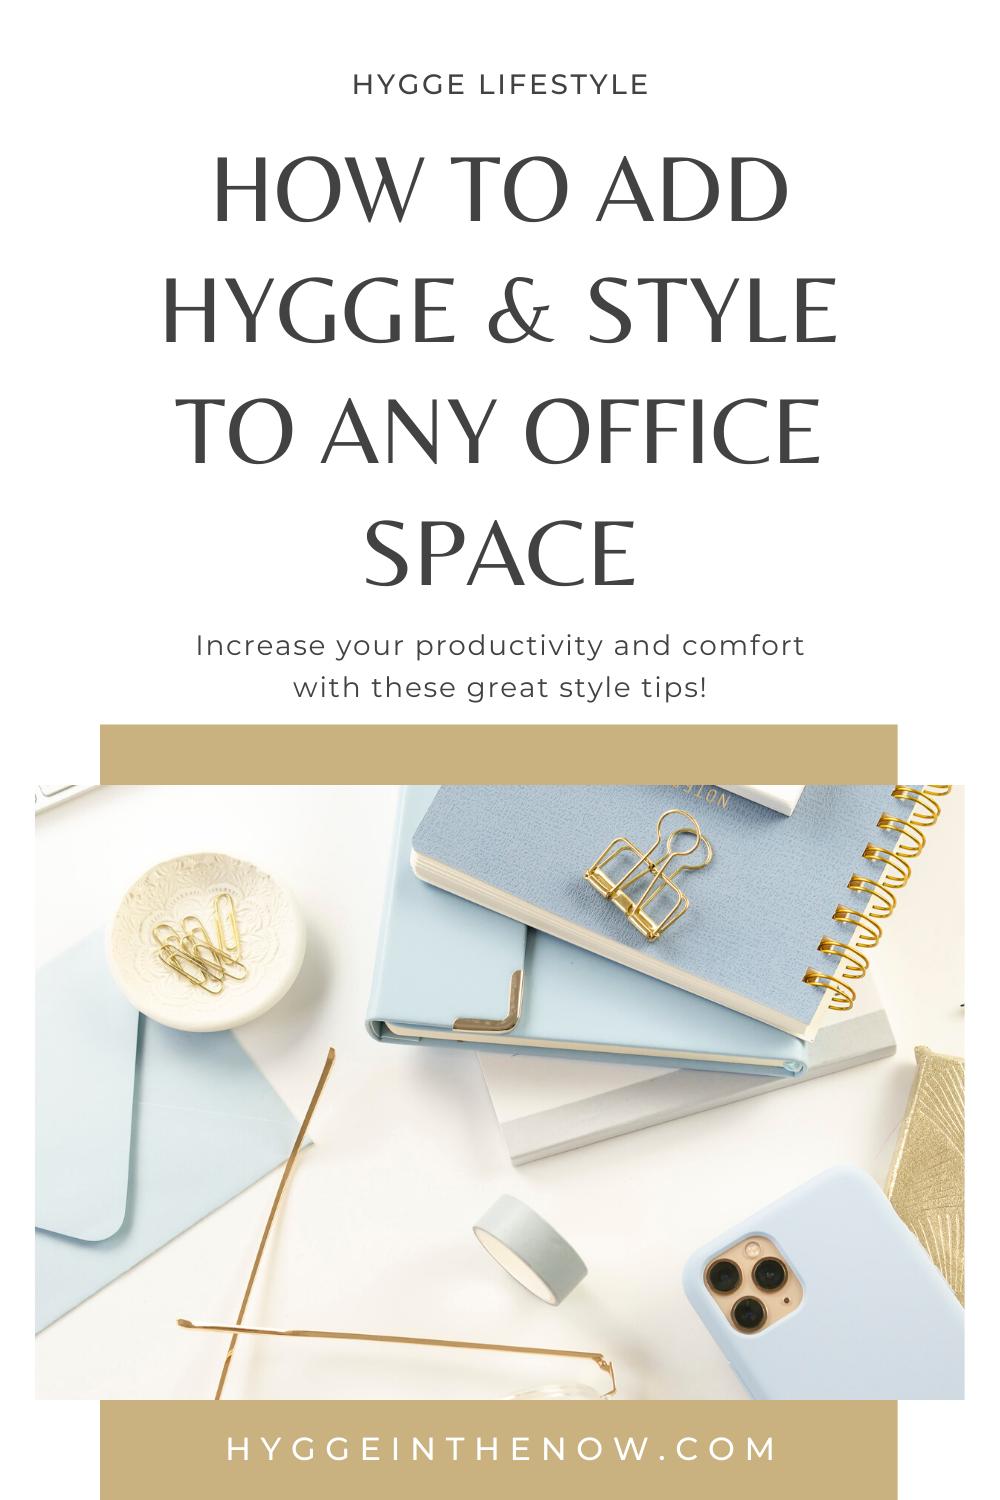 Tips to add hygge and style to any office space